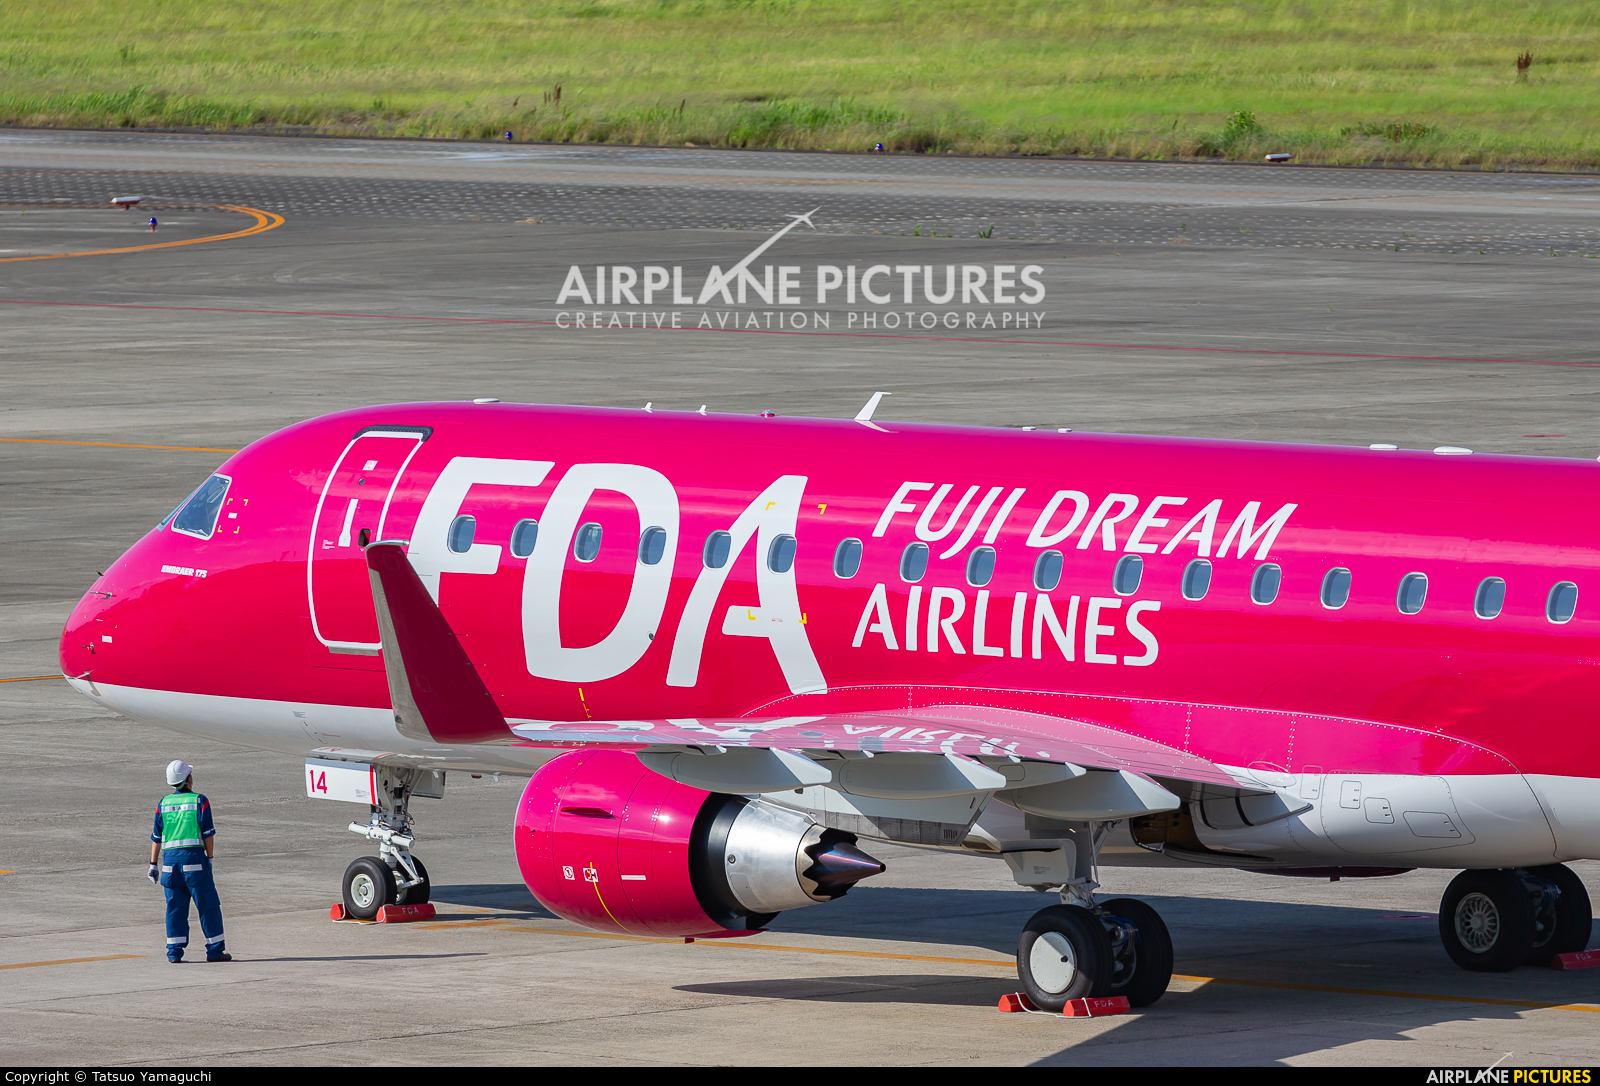 Fuji Dream Airlines JA14FJ aircraft at Nagoya - Komaki AB